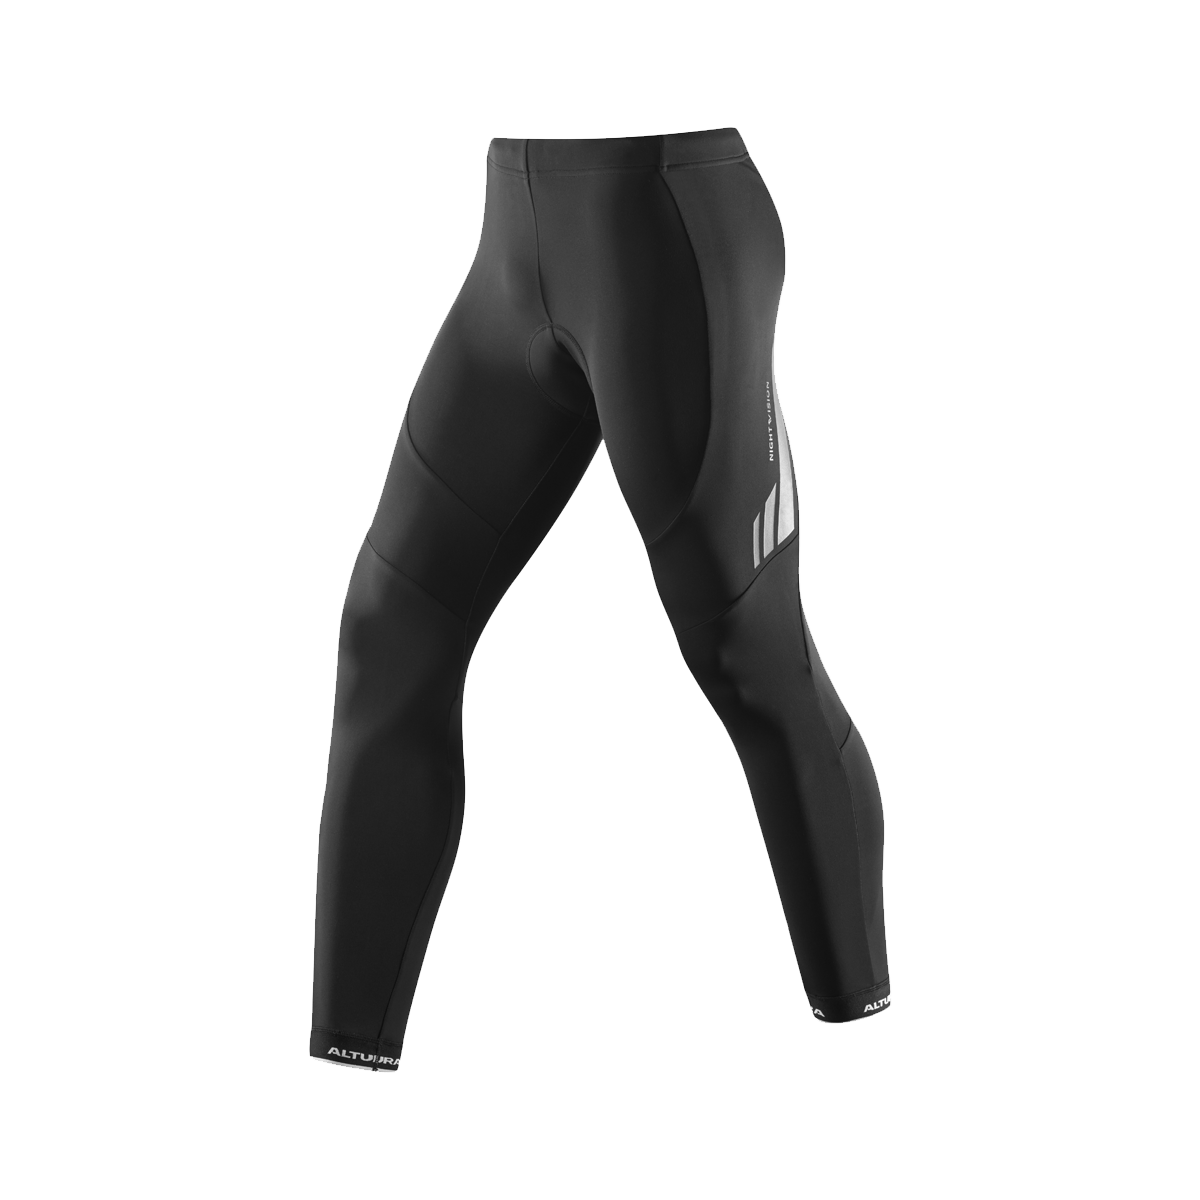 Nightvision 2 Commuter Waist Tight